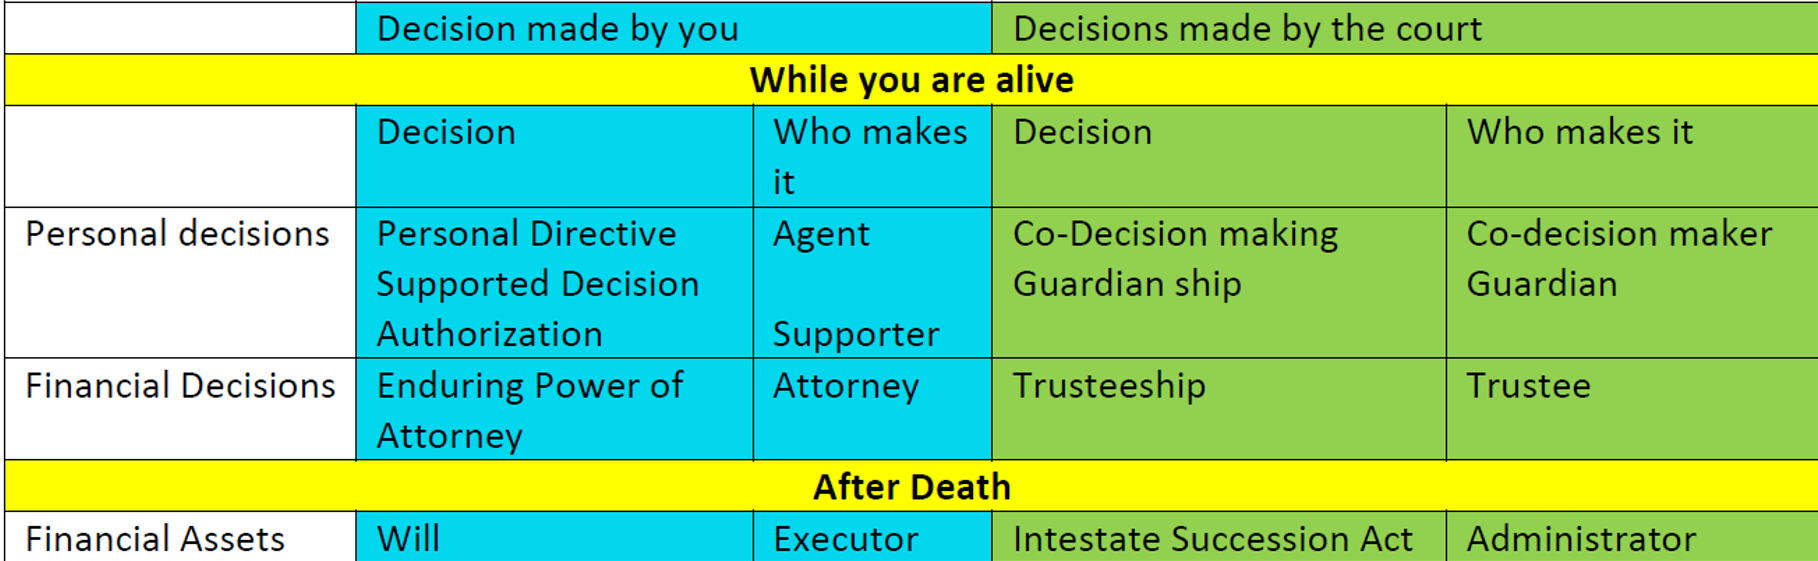 Personal directives - decisions - who and when they are made